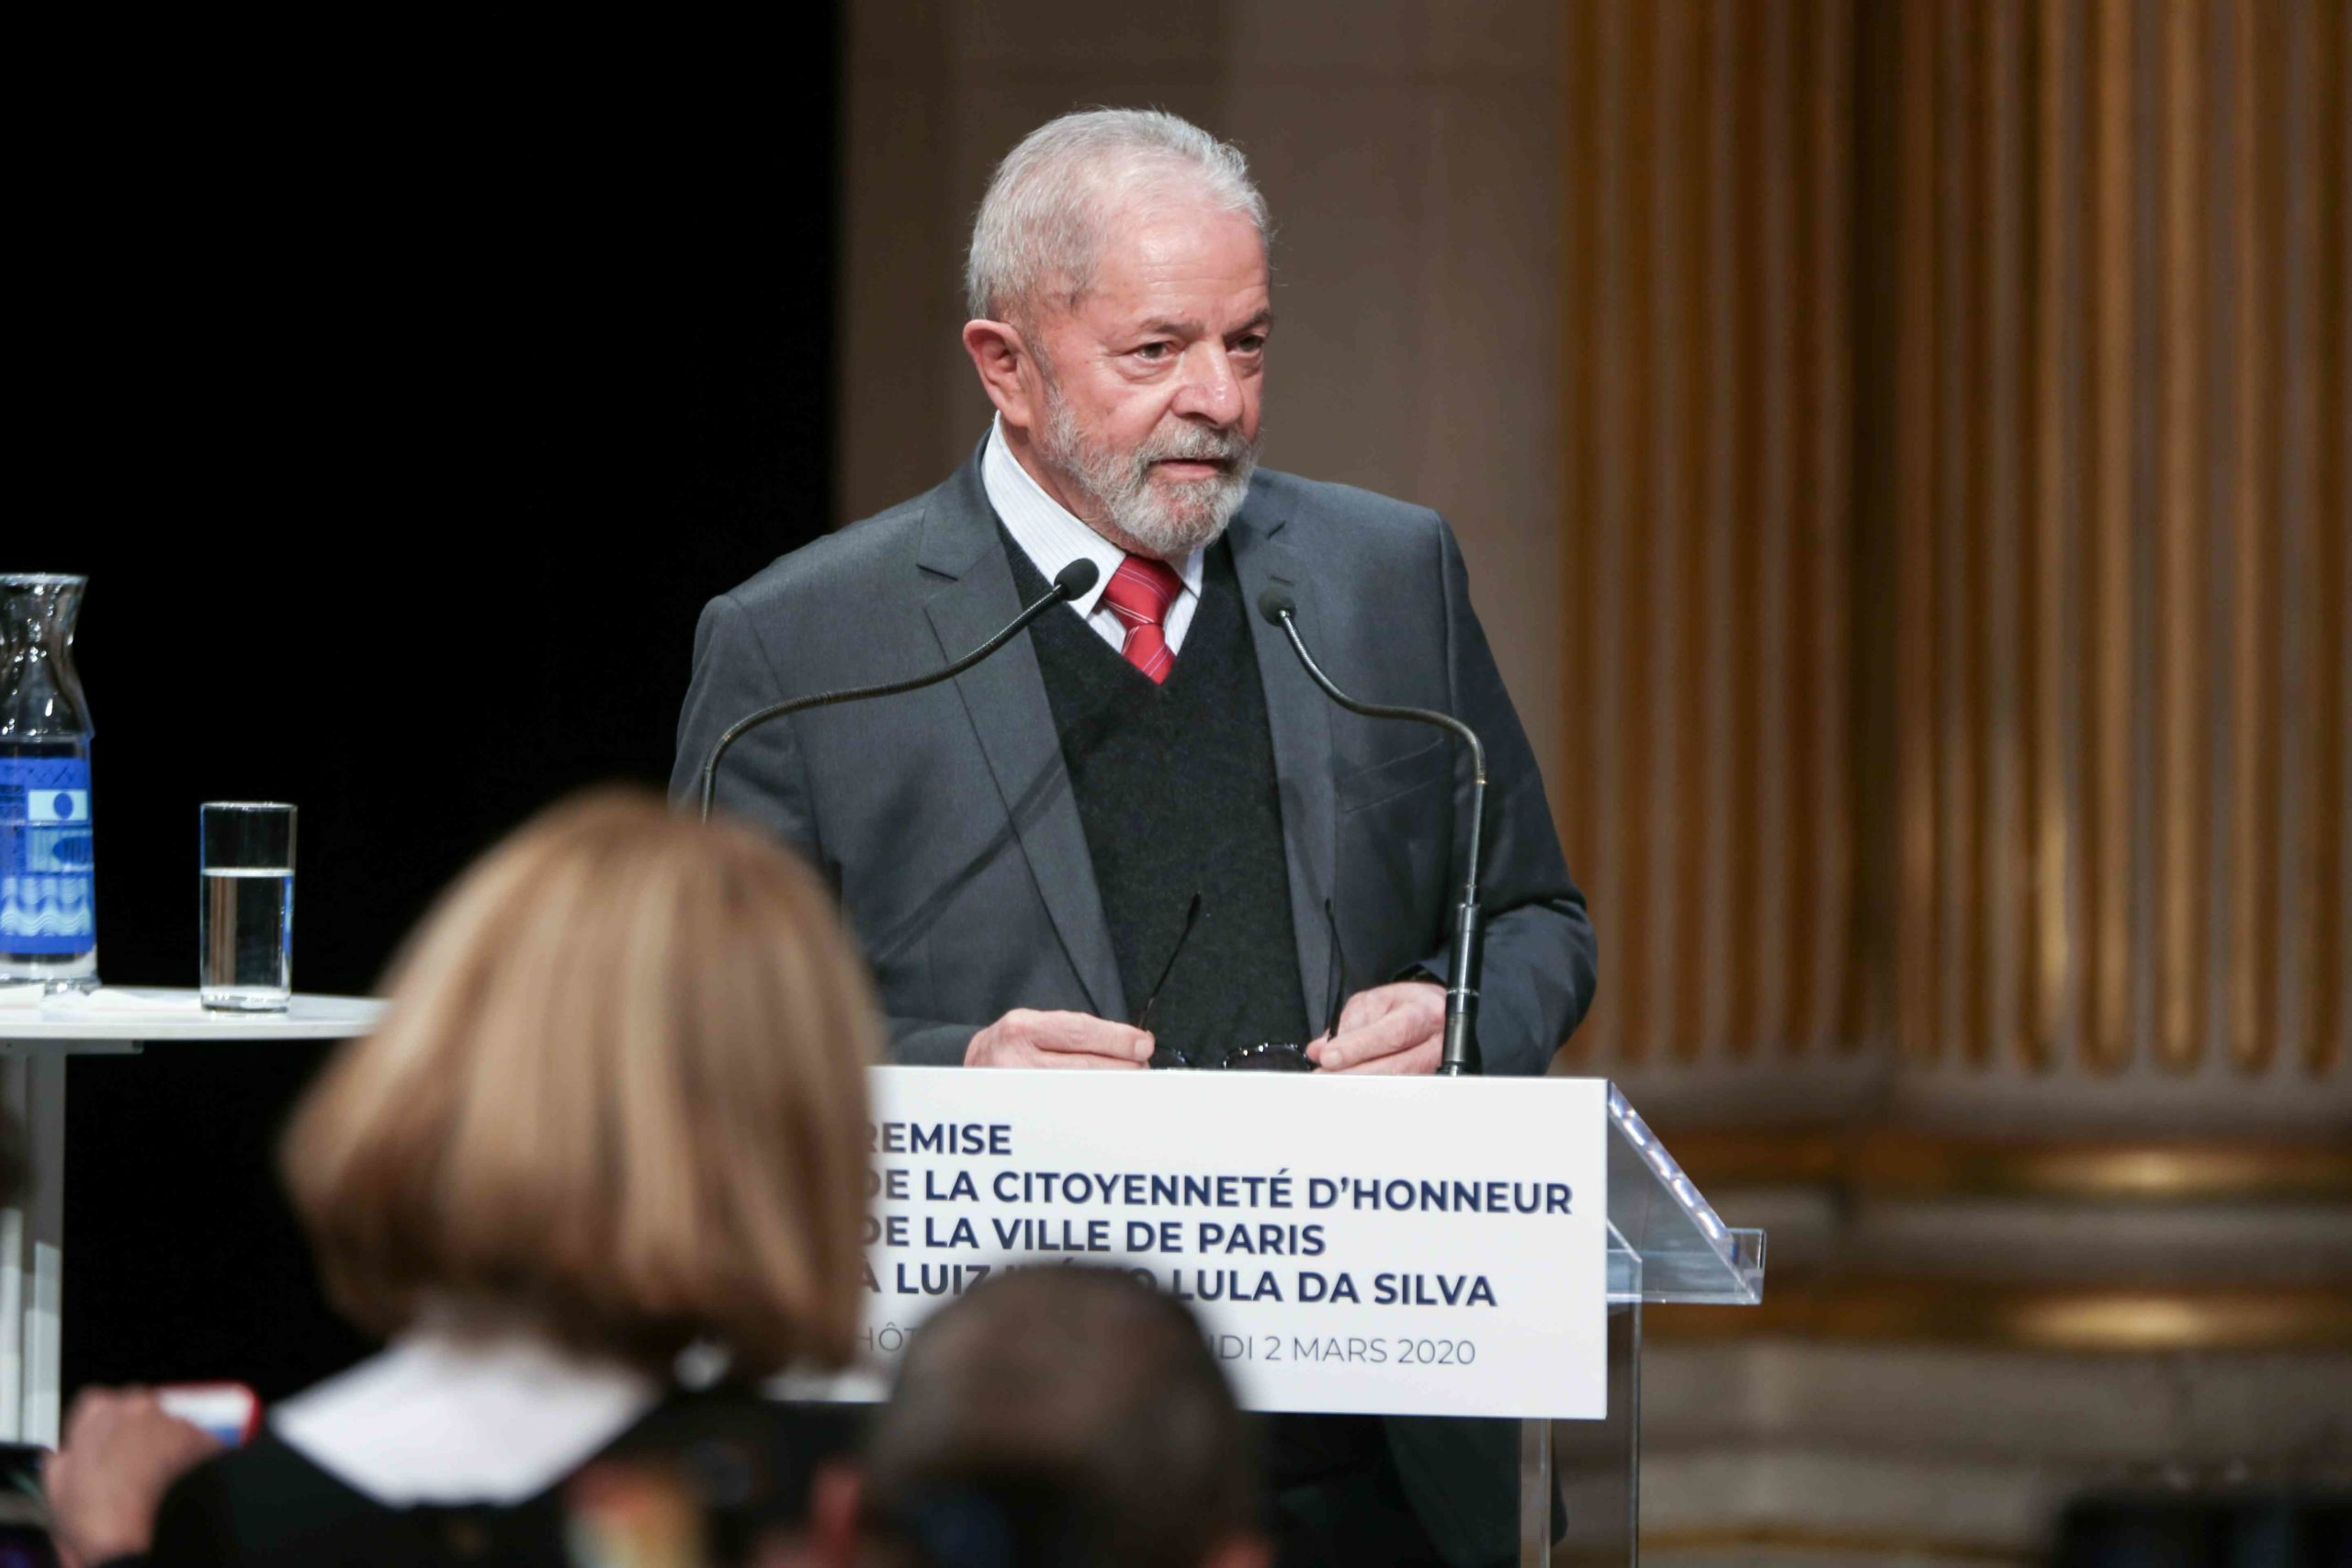 Former Brazilian president Luiz Inacio Lula da Silva speaks during a ceremony at the City Hall of Paris, on March 2, 2020, during wich he was named  honorary citizen of the city of Paris.